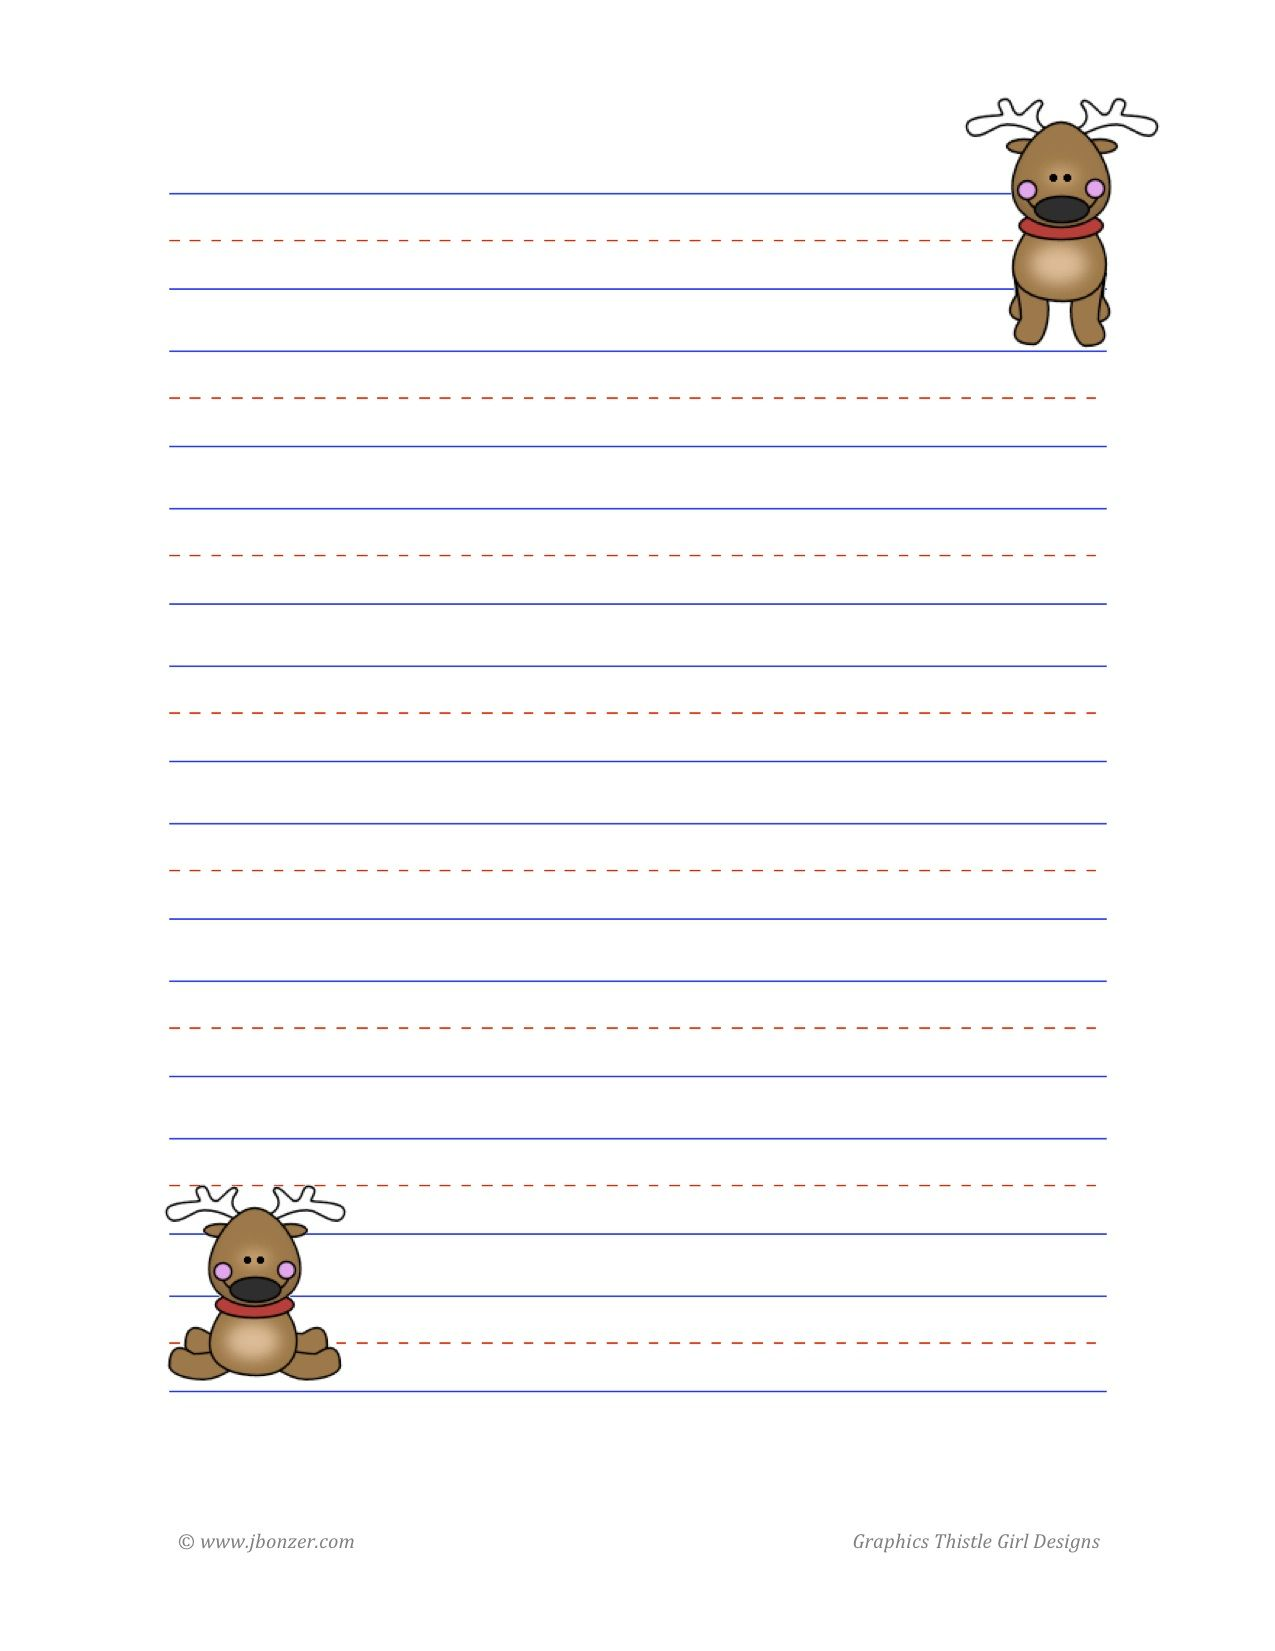 Reindeer Lined Writing Paper  School Ideas To Try